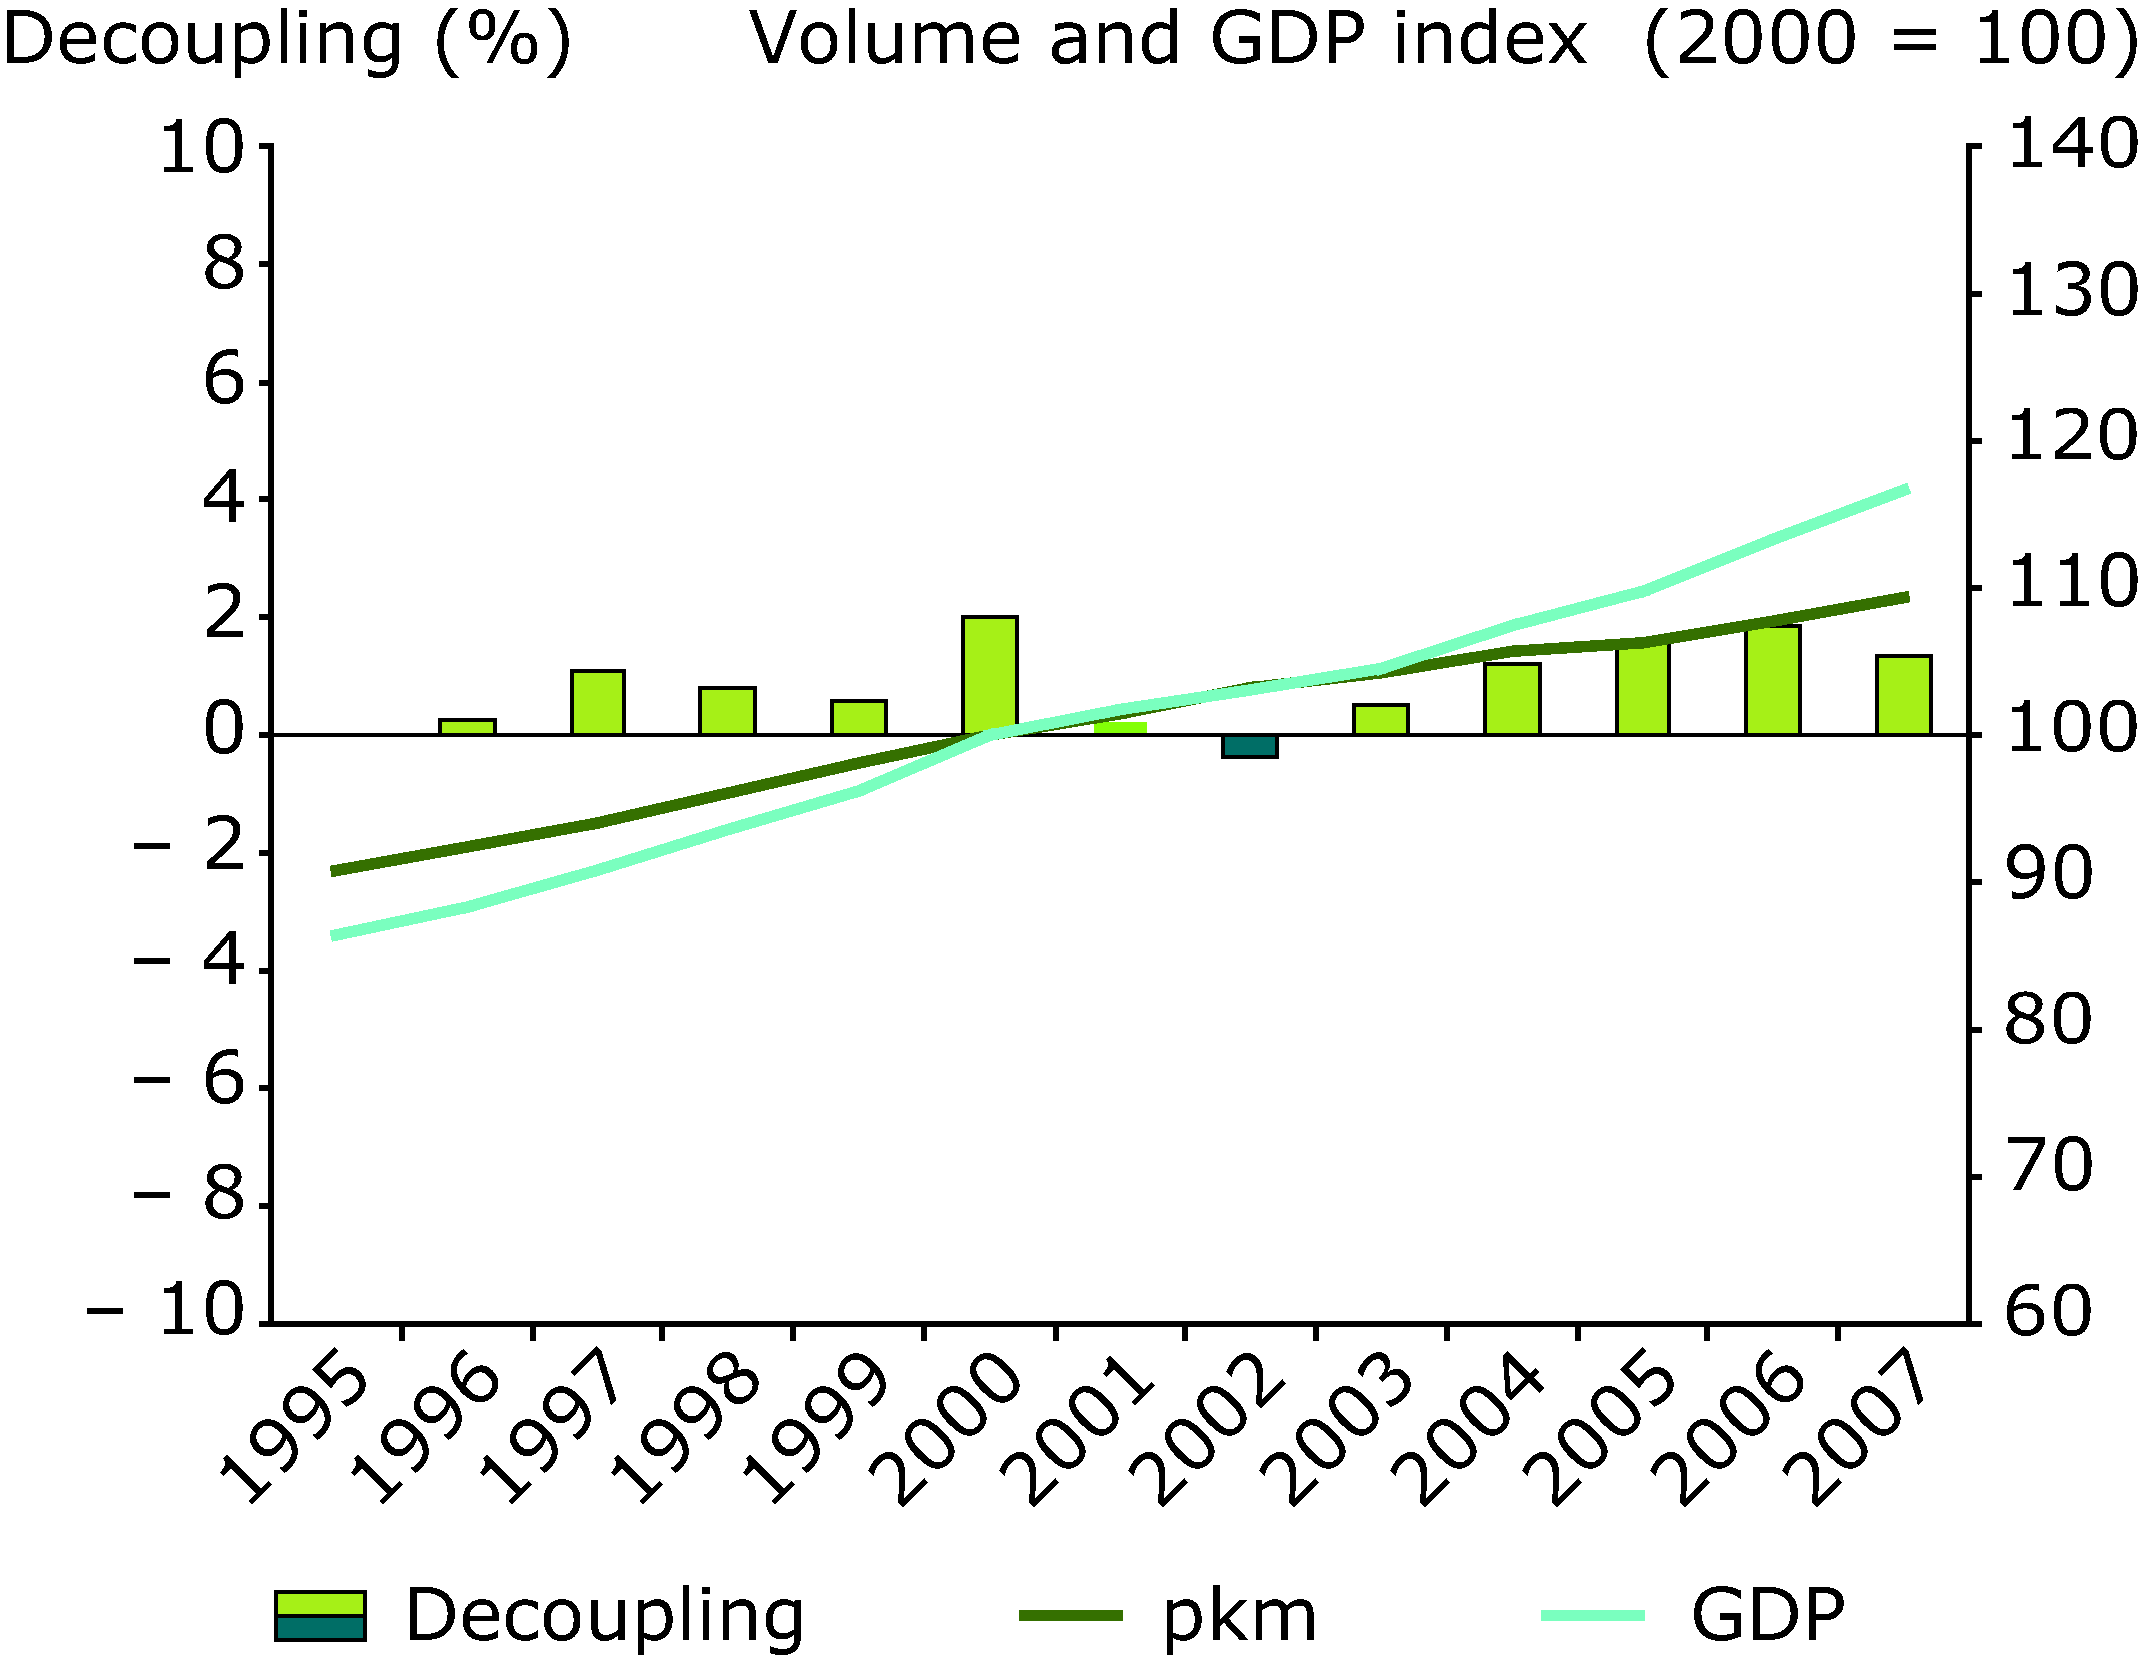 Trends in passenger transport demand and GDP